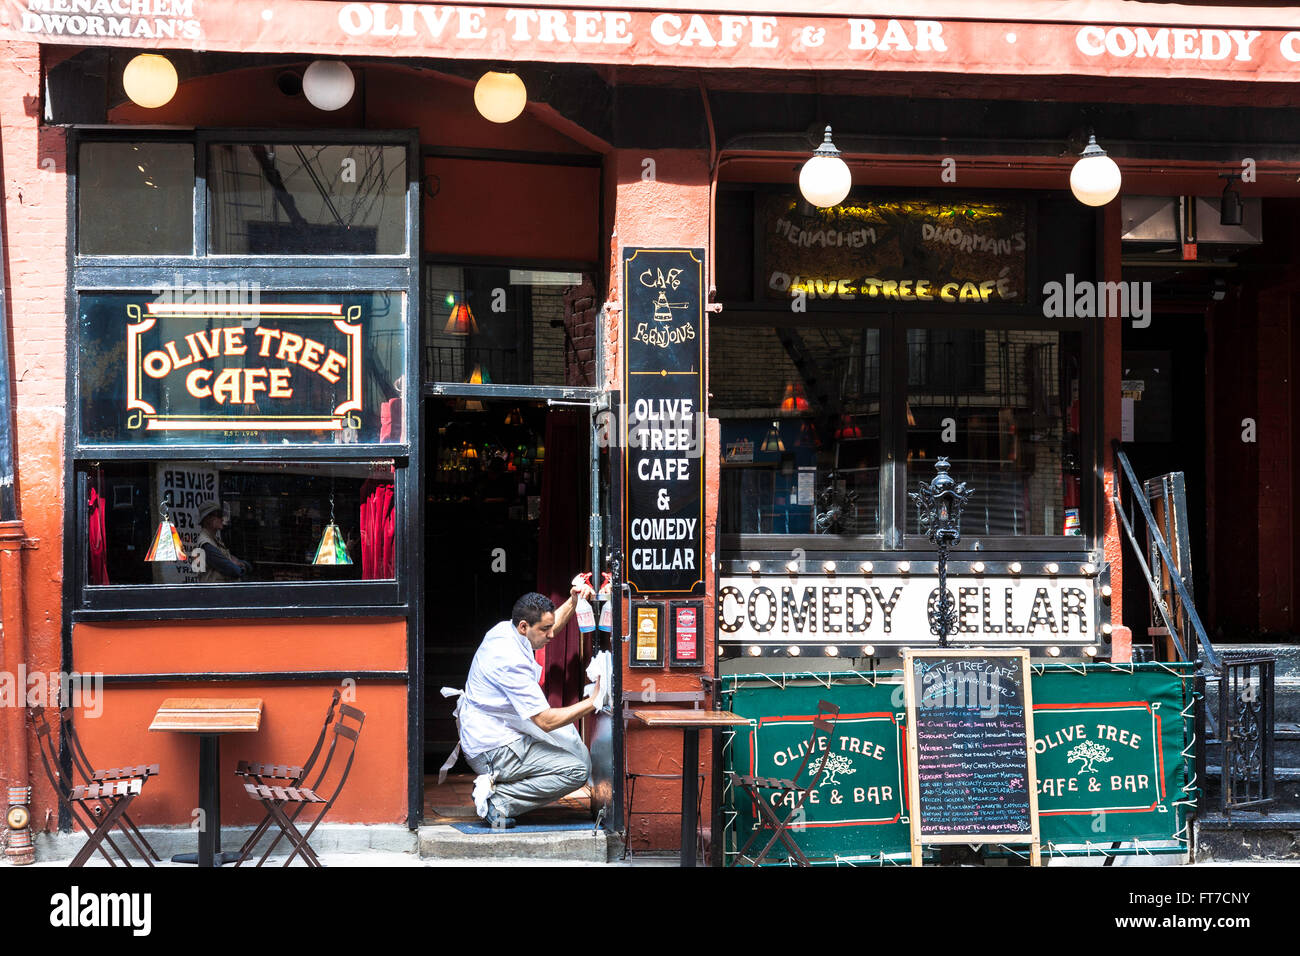 Cafe Employee Readying Place for Opening, Greenwich Village, NYC Stock Photo